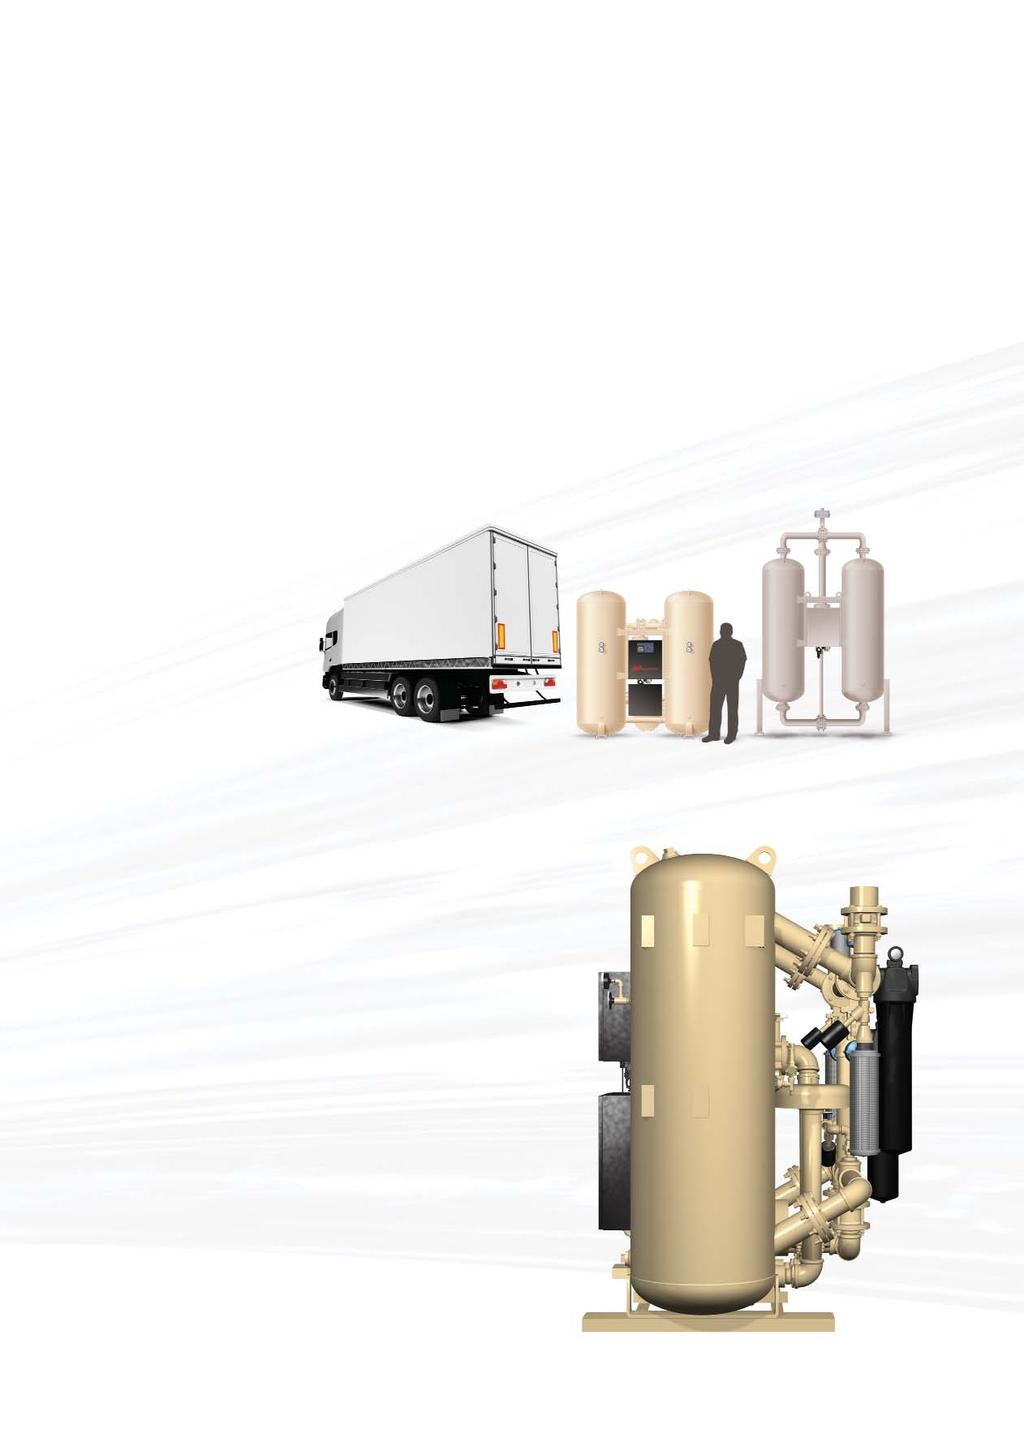 Innovative Design is Now Within Reach Ingersoll Rand Ingersoll Rand heatless and heated blower desiccant dryers are engineered for easy access, maximum efficiency and long life are delivered in a